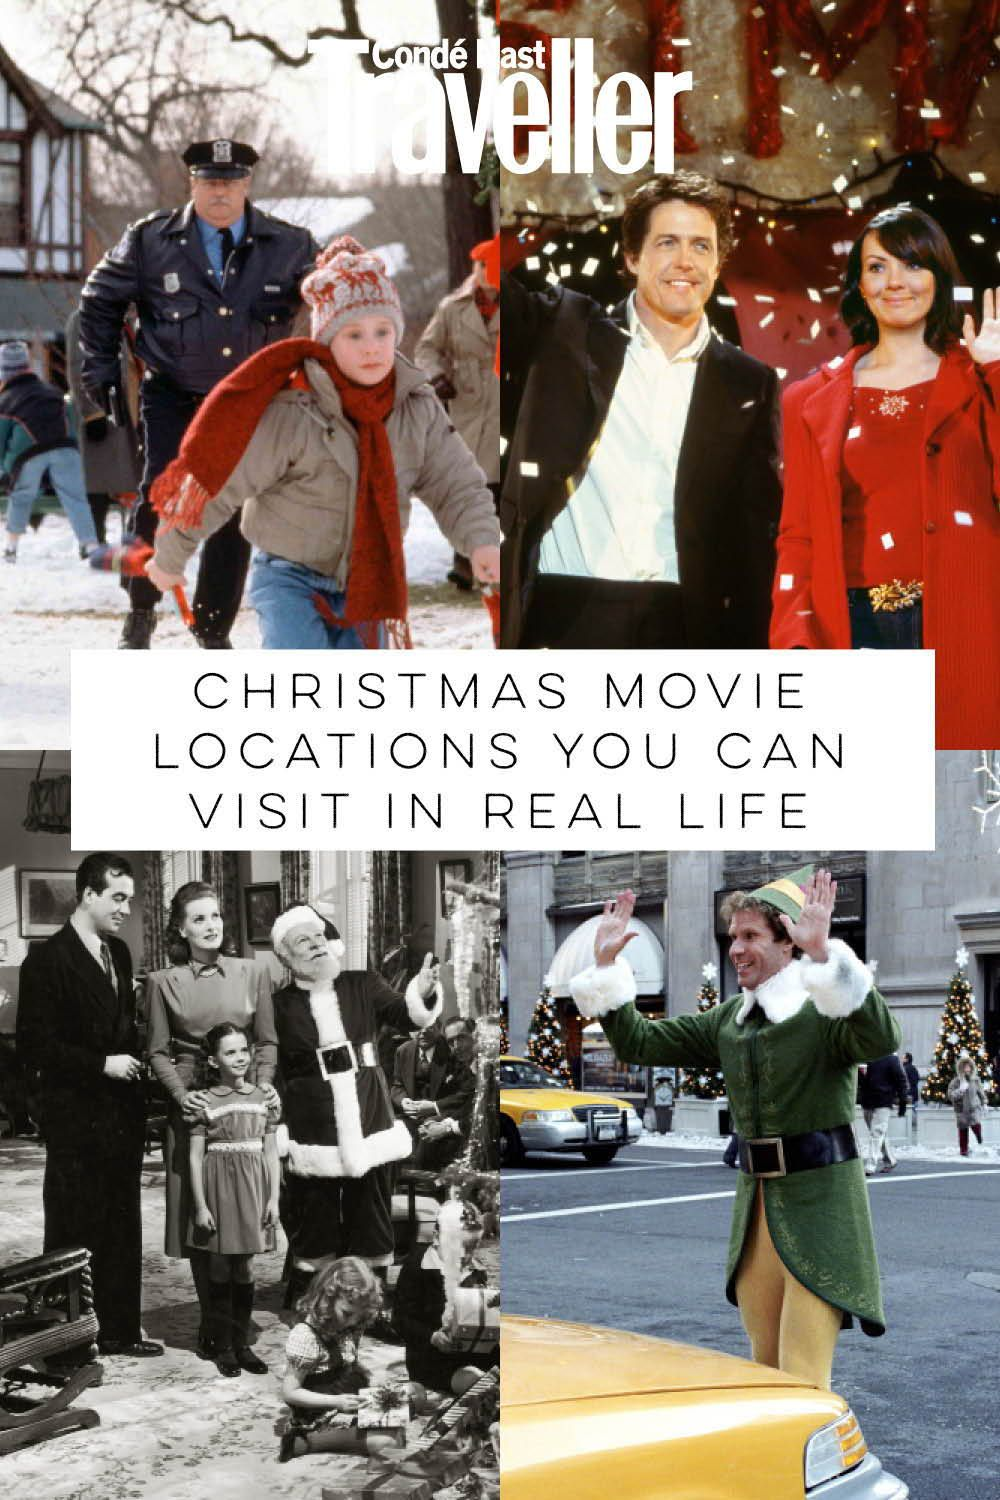 Christmas movie locations you can visit in real life   Filming locations, Christmas movies, Real ...